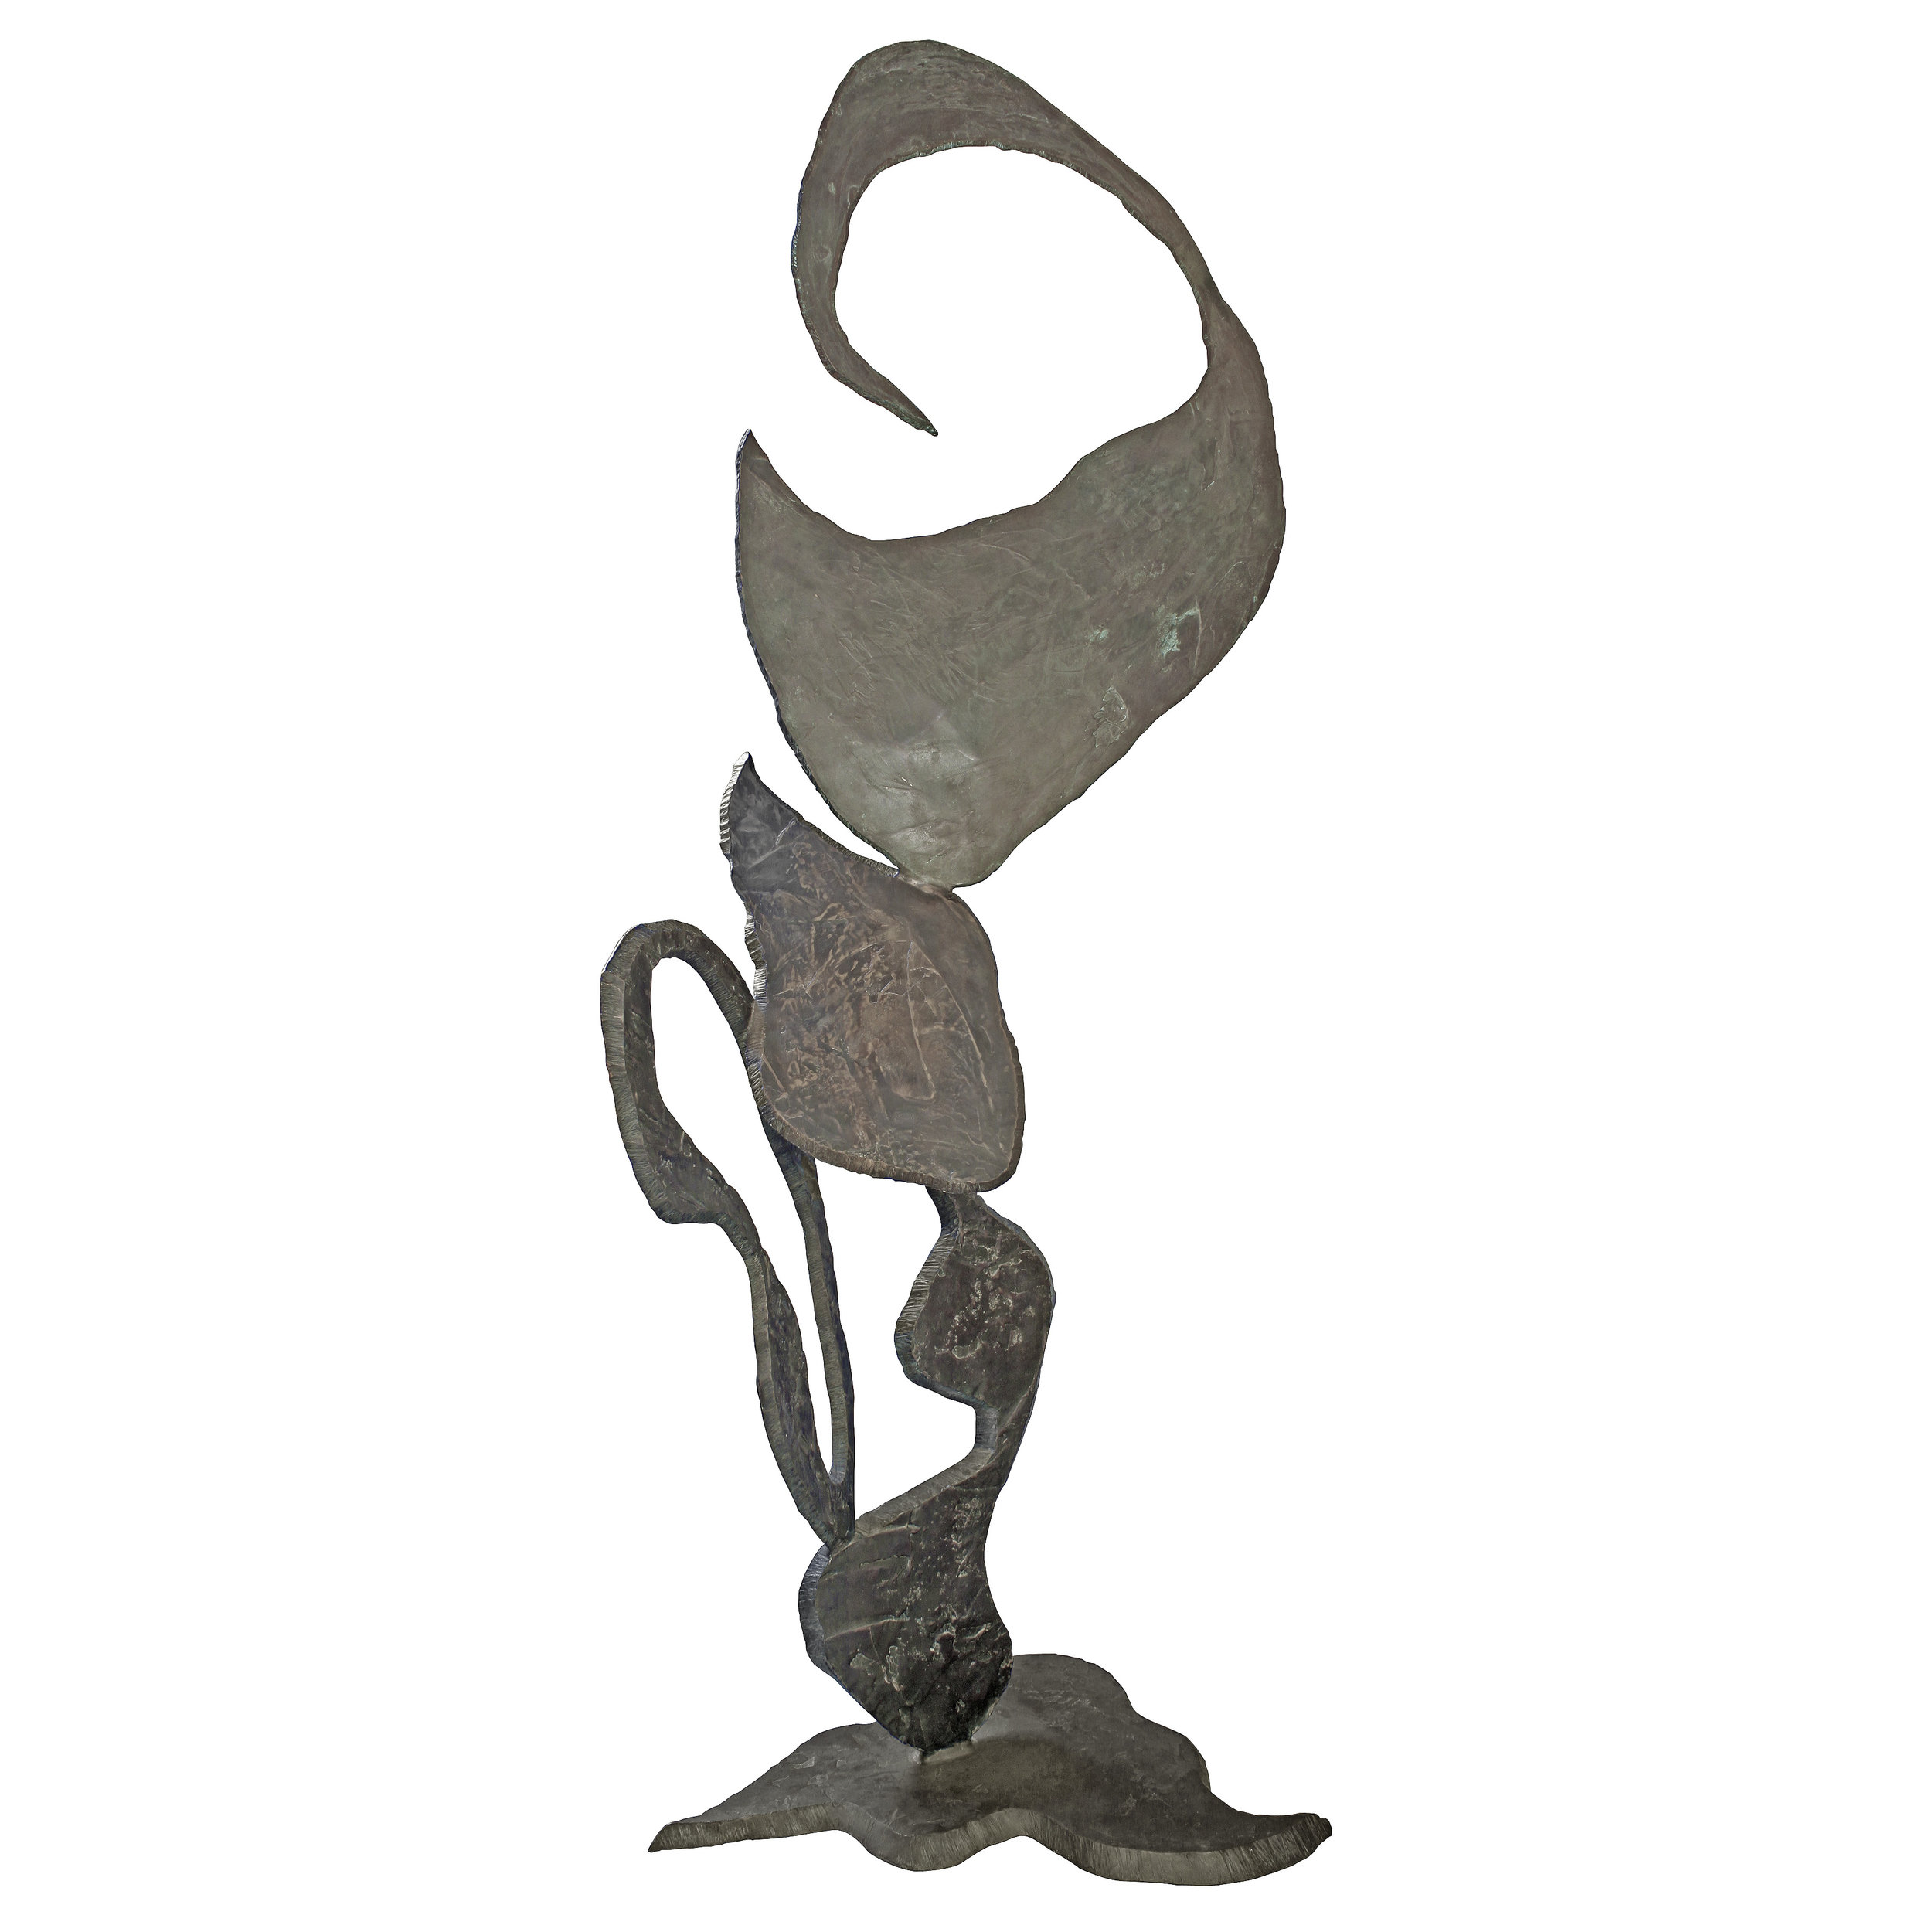 Gibbons 250 lrg bronze abstact sculpture103 hires main.jpg